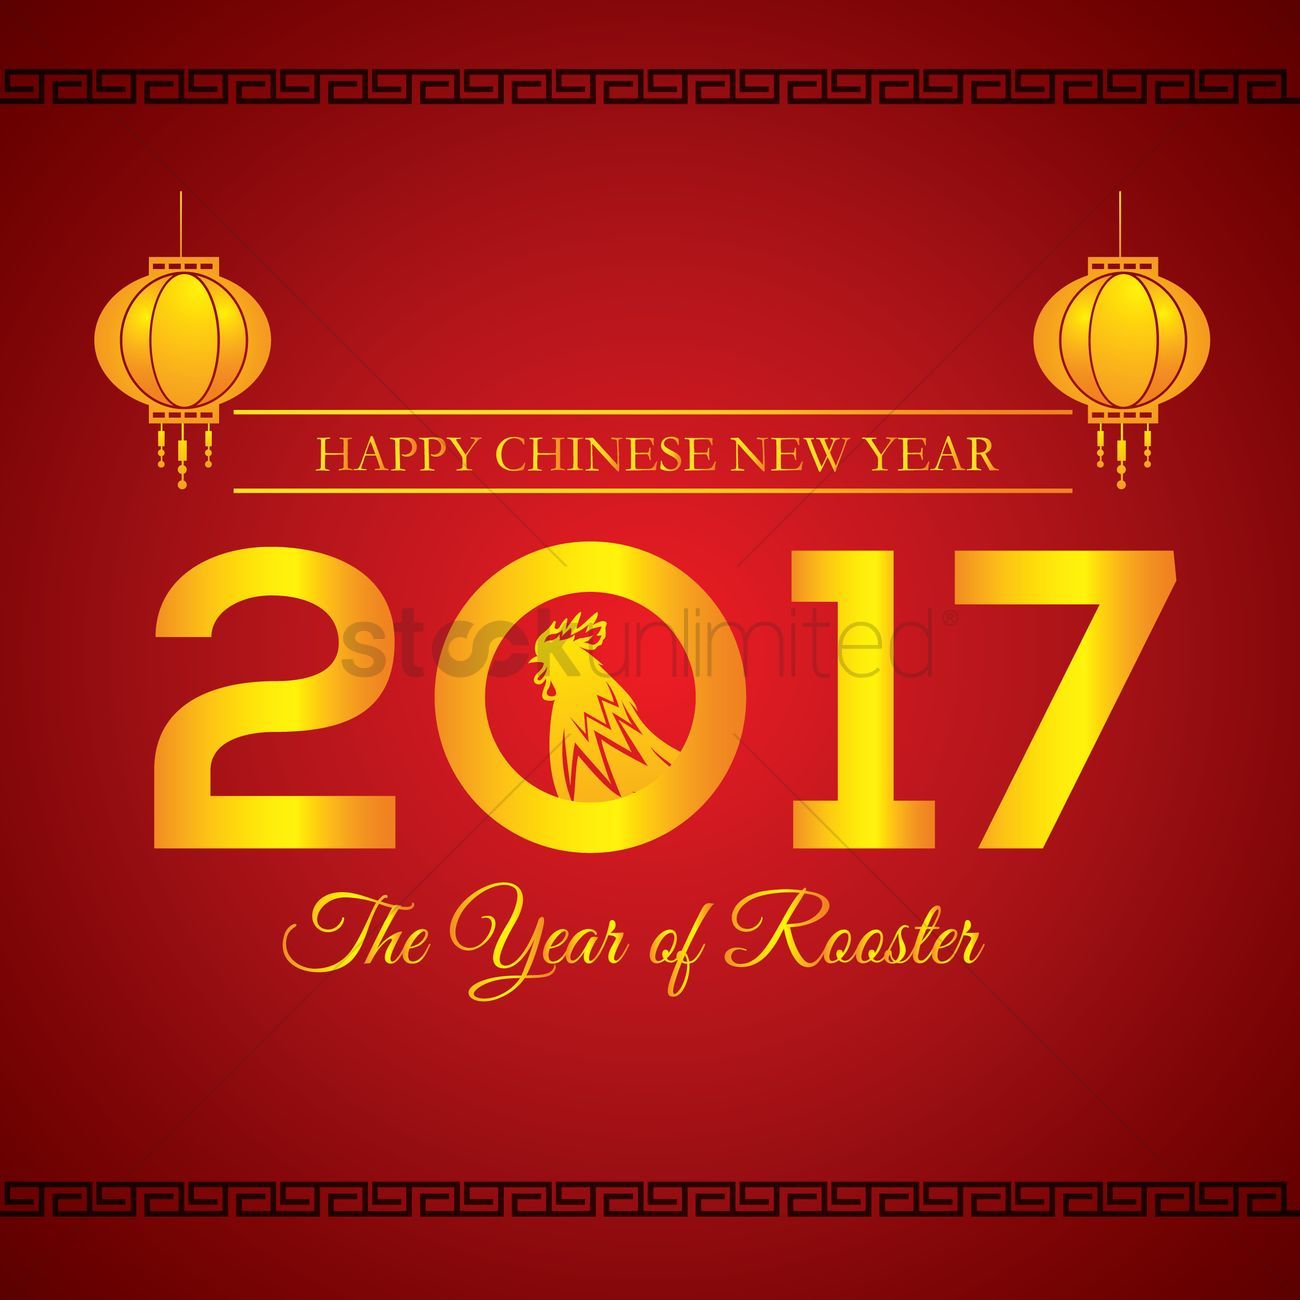 happy chinese new year 2017 with rooster vector graphic - Happy Chinese New Year In Chinese